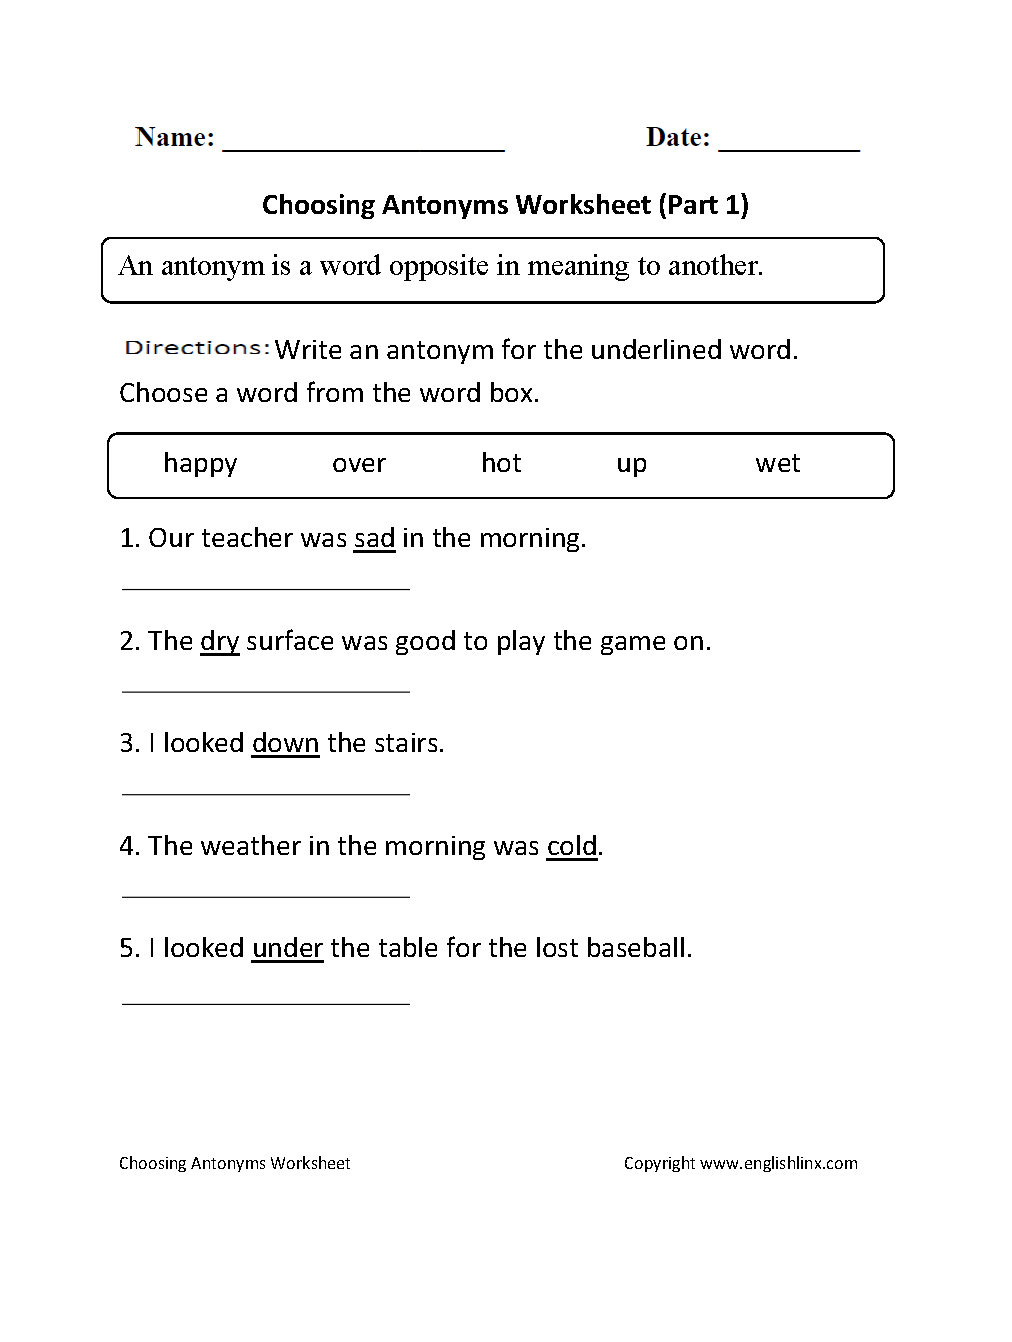 Choosing Antonyms Worksheet Part 1 Special education